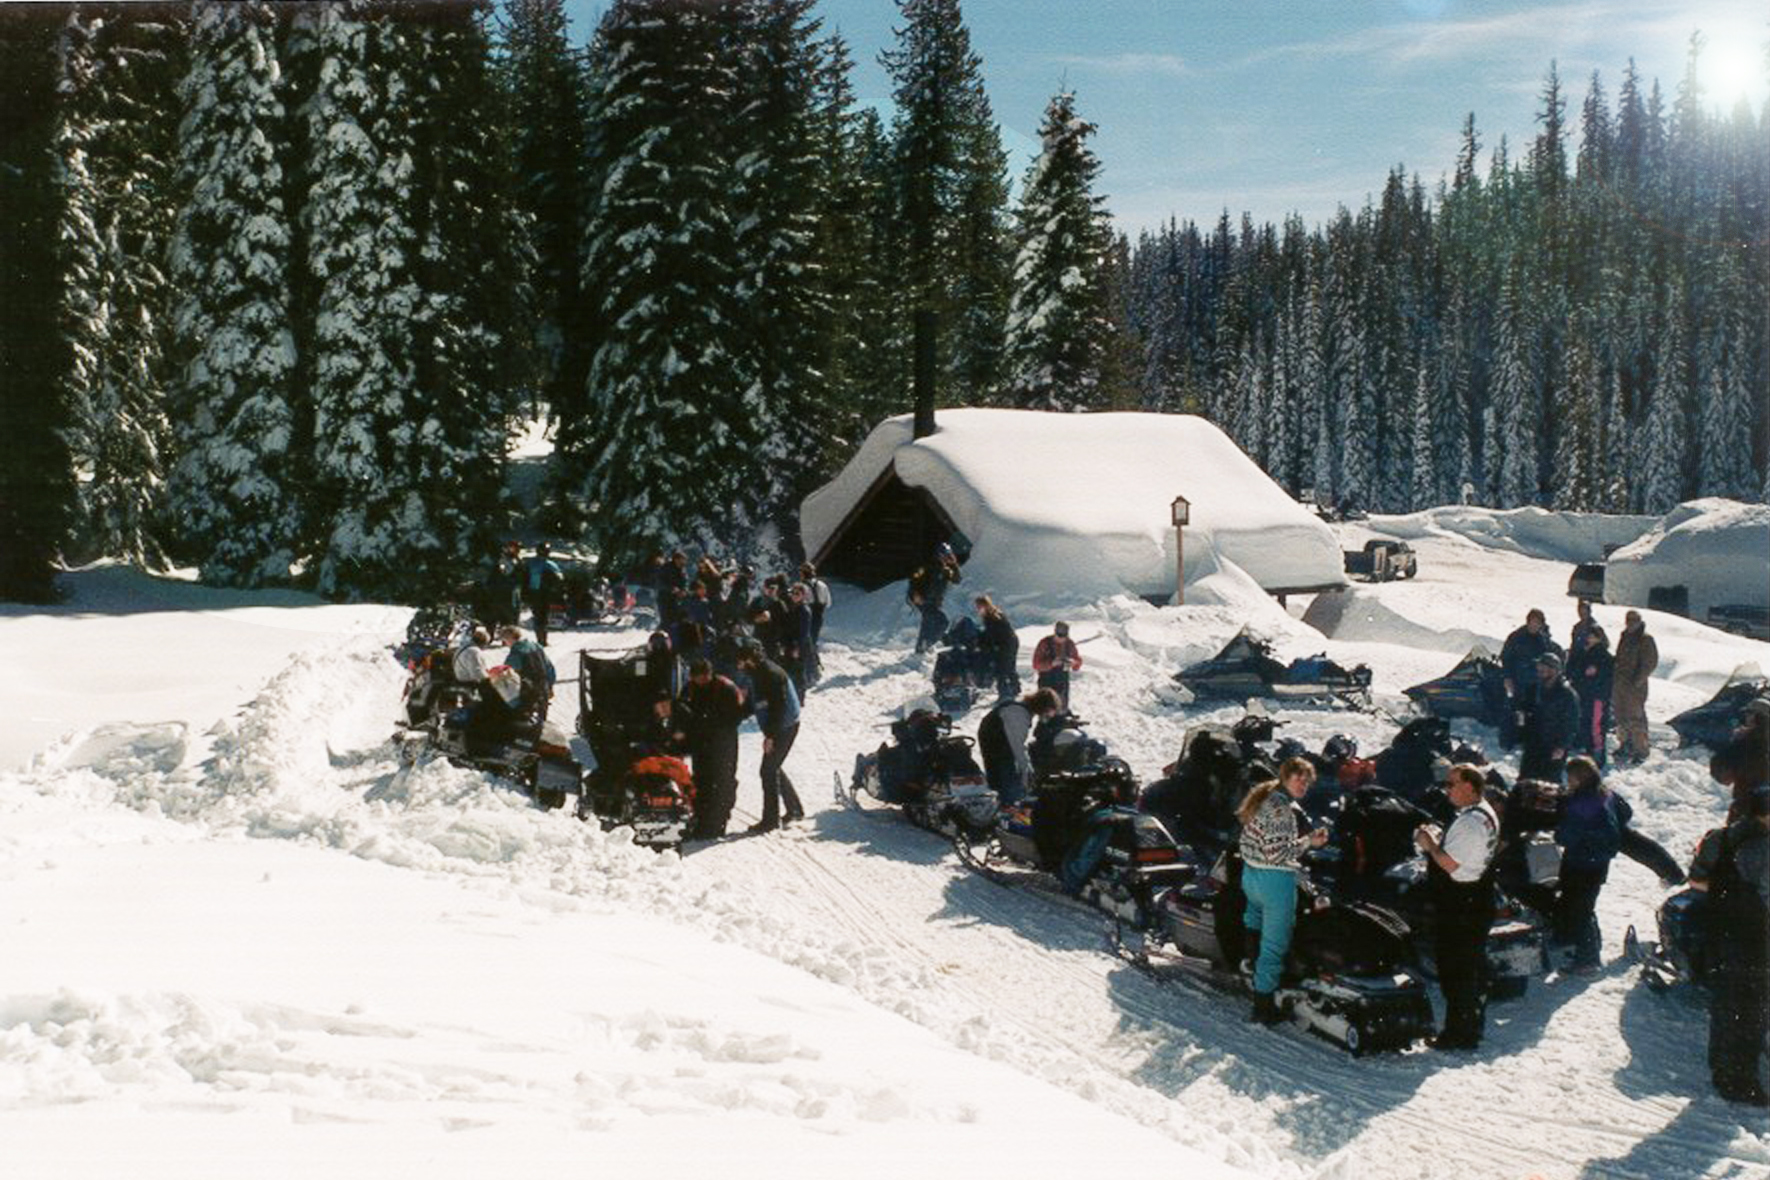 A large group of snowmobilers gathered at Lolo Pass on a wintry afternoon.